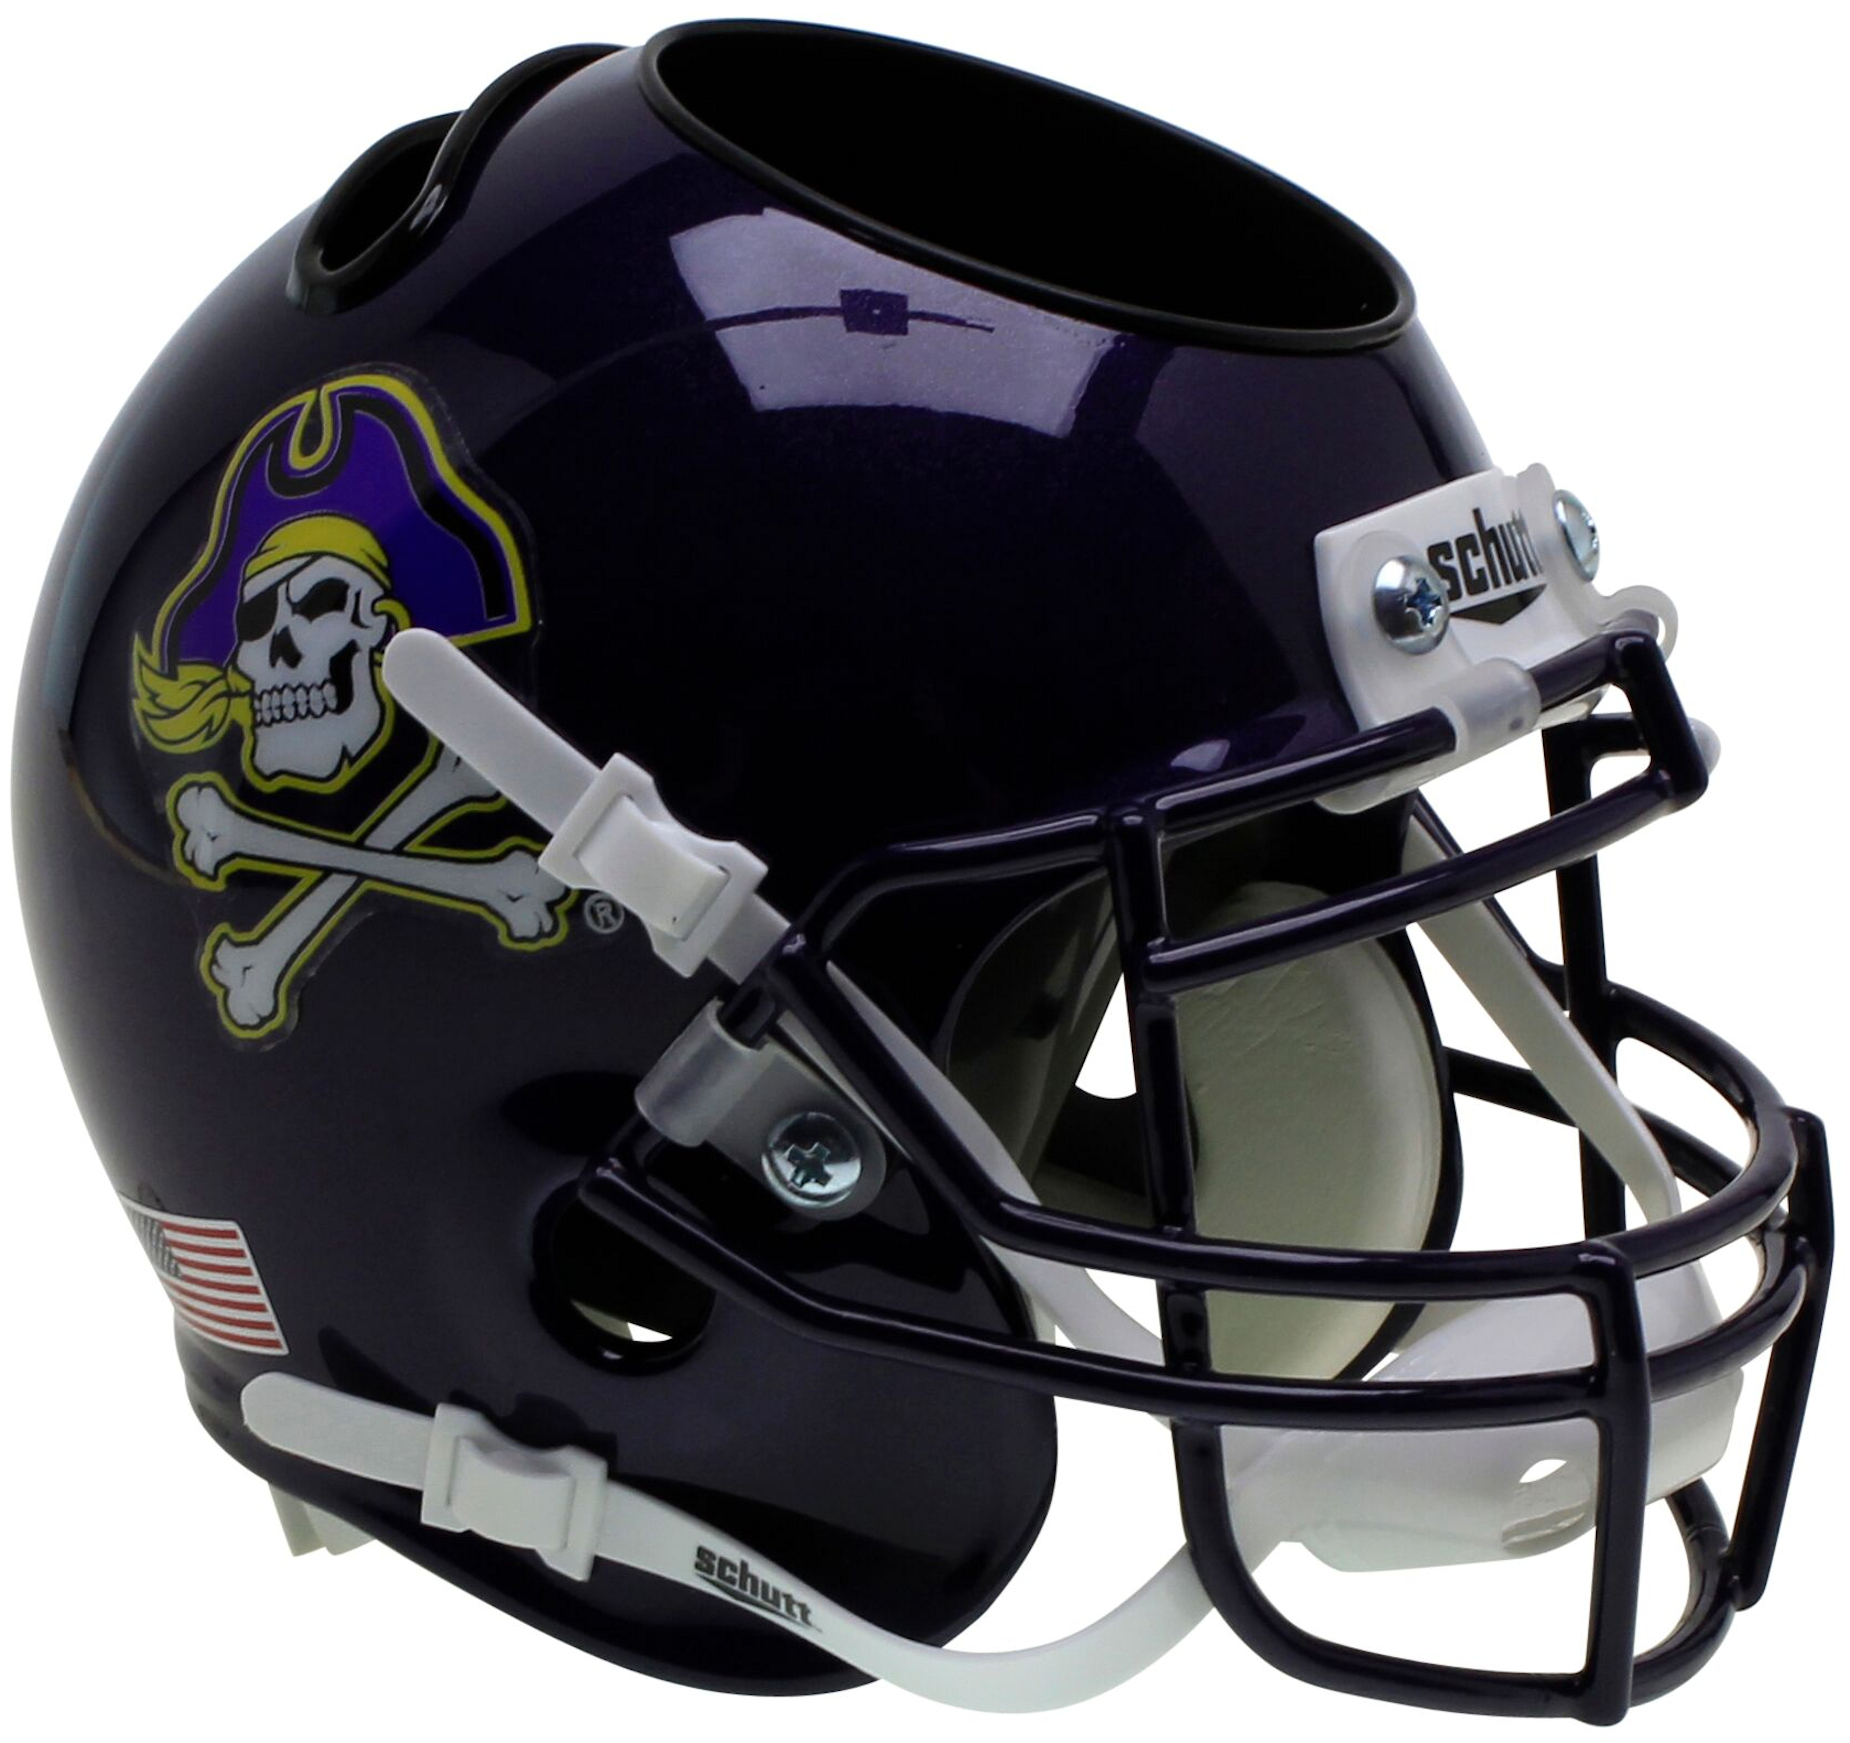 East Carolina Pirates Miniature Football Helmet Desk Caddy